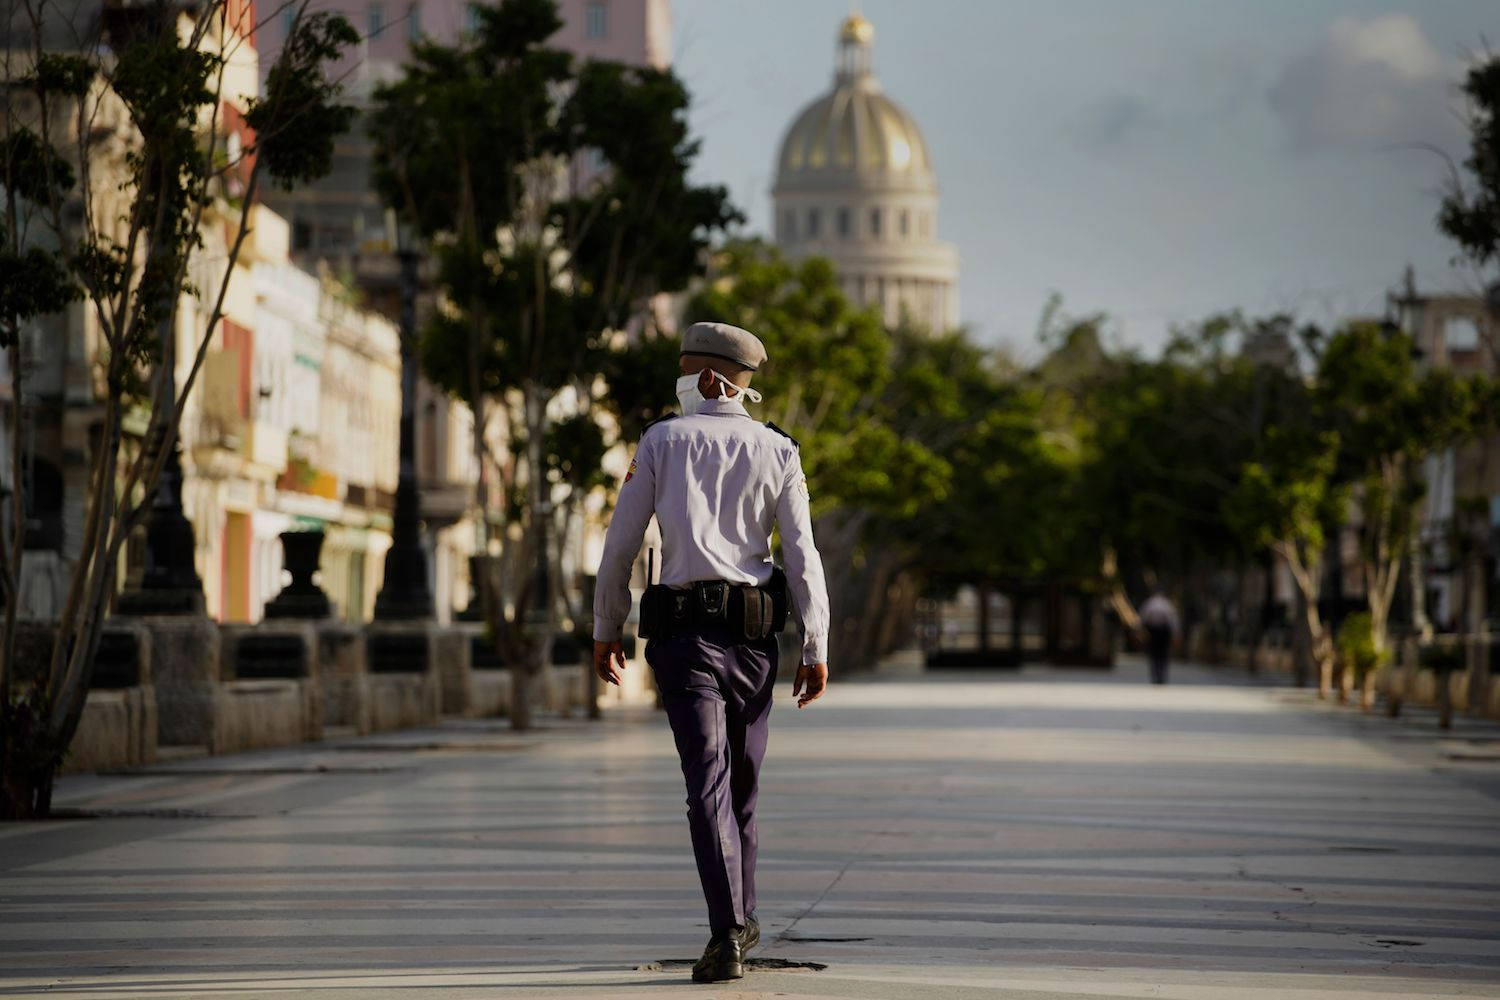 Cuba Loves to Criticize the United States, but the Island Has Its Own  Police Racism Problem